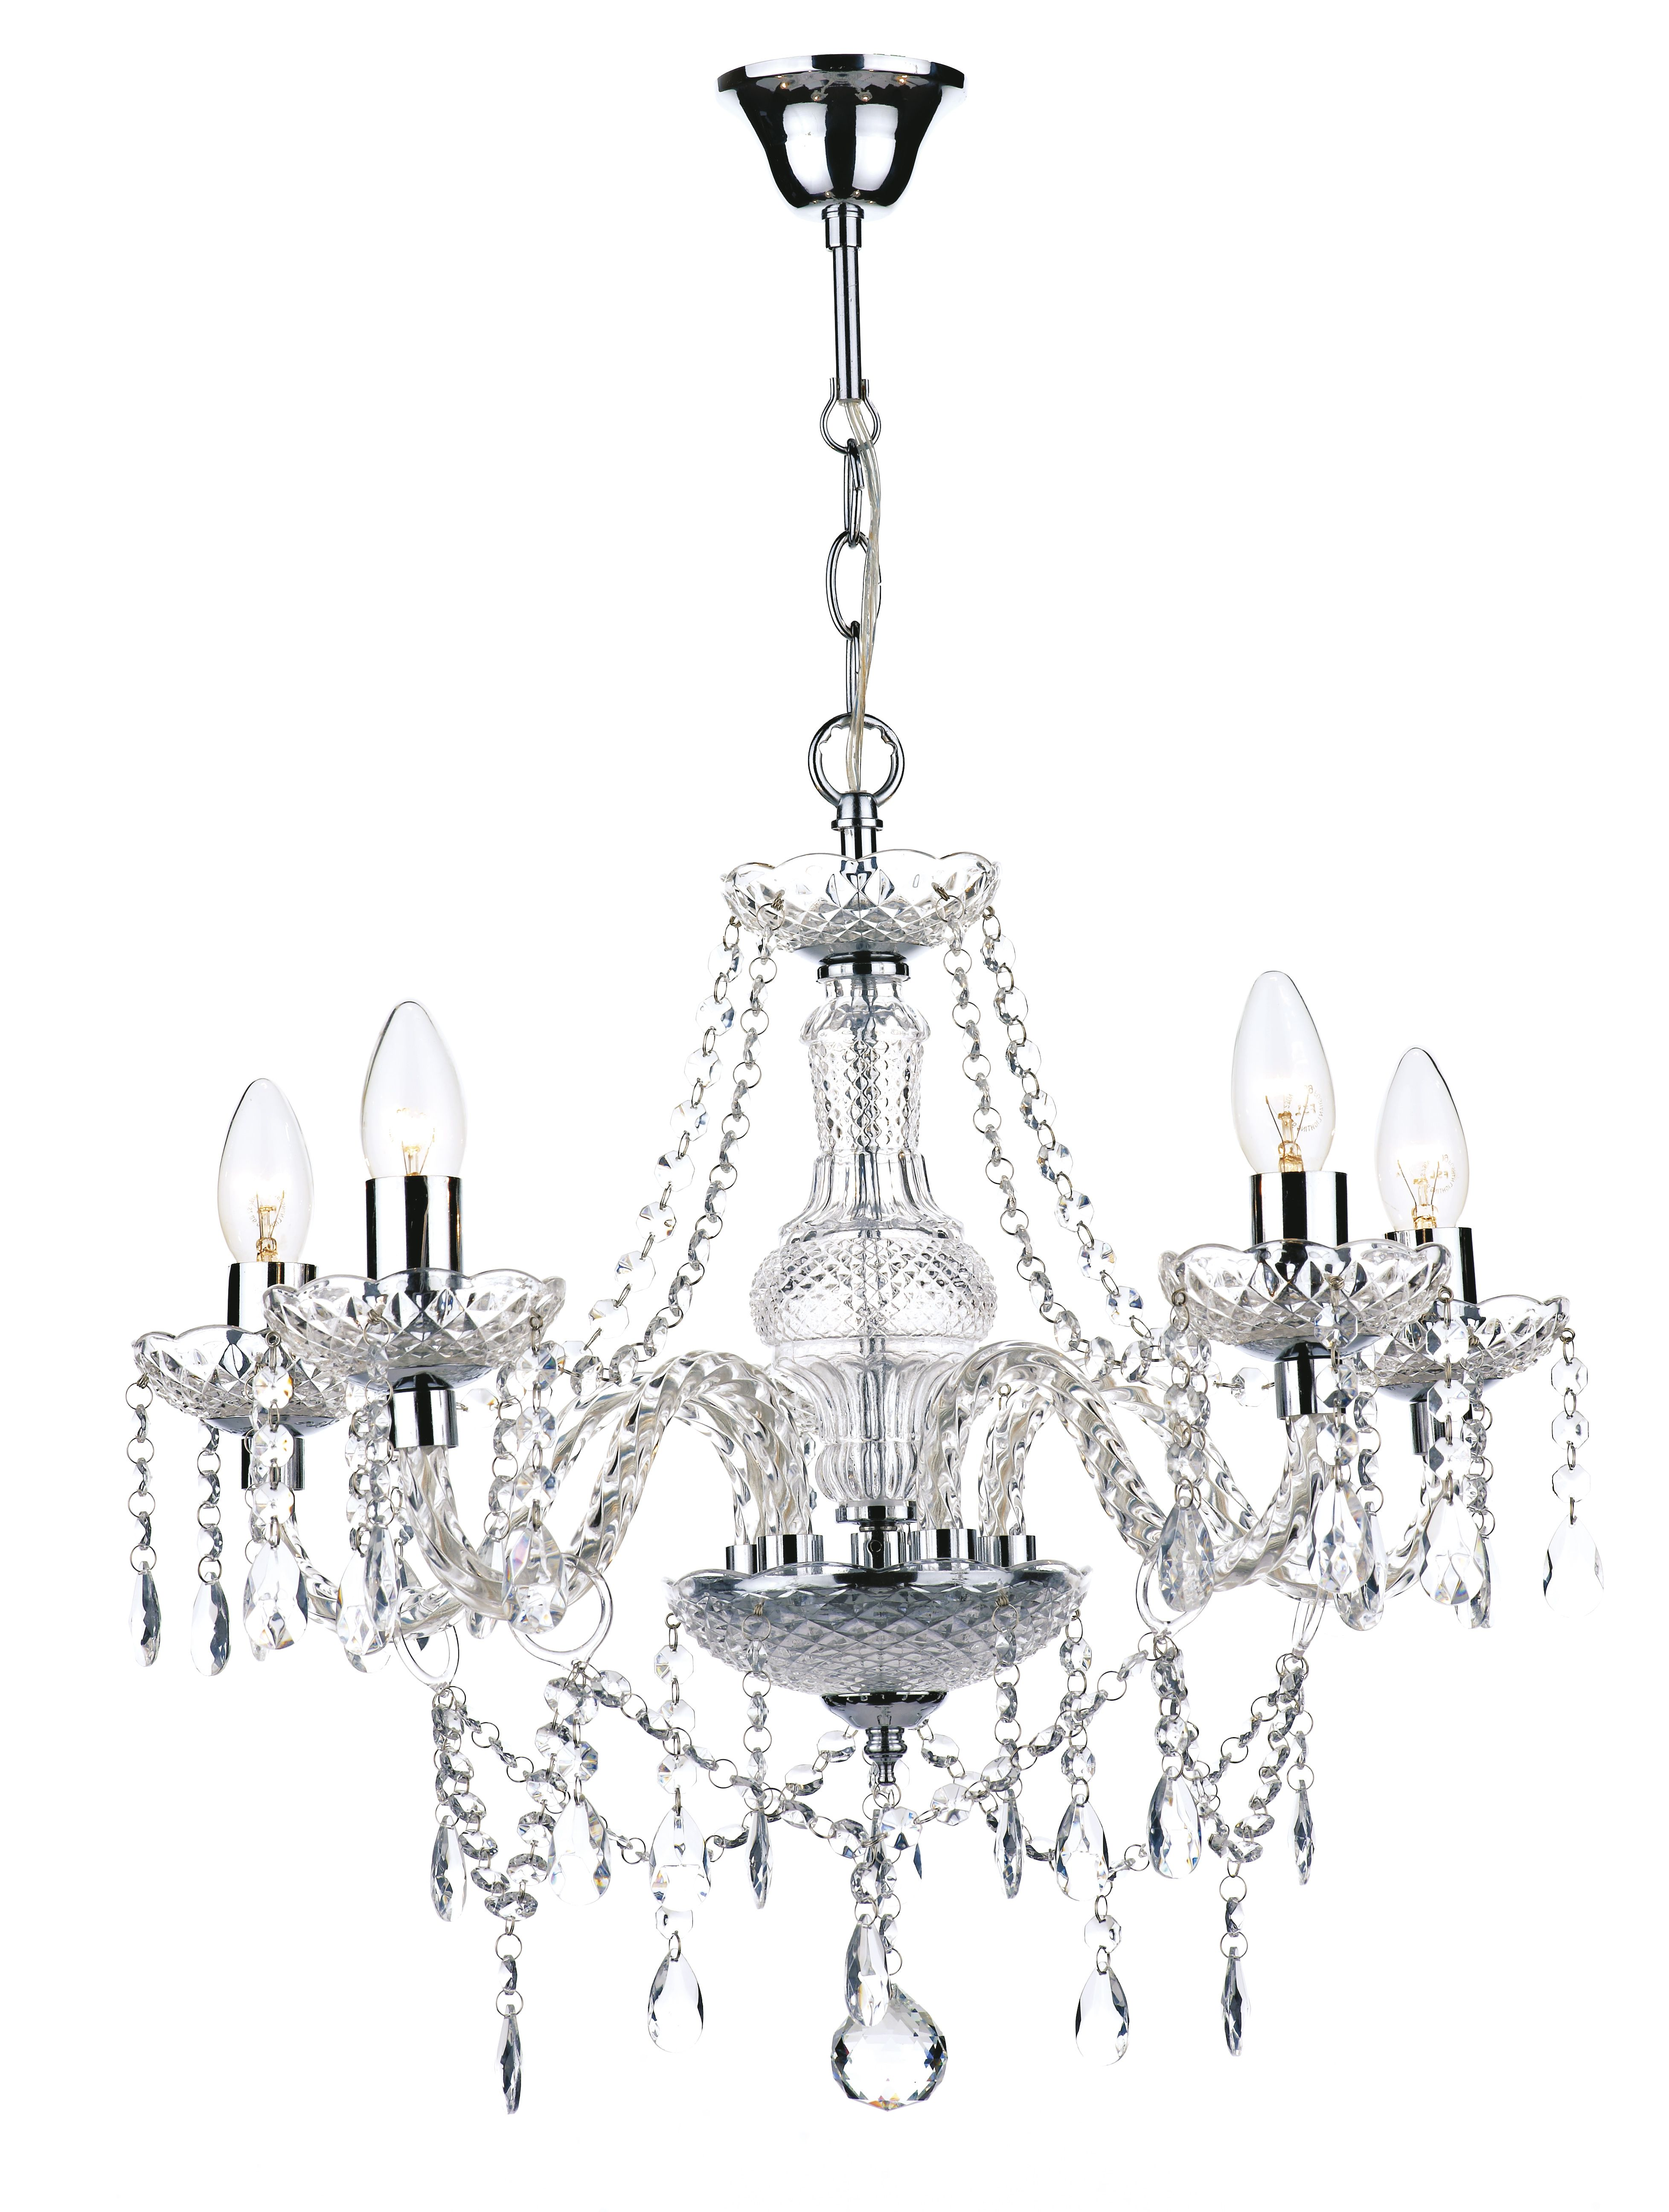 5 light polished chrome crystal chandelier 205 thornhill malone katie 5 light chandelier in polished chrome pear shaped glass drops and bead decoration glass frame and removable glass sconces acrylic arms 5 x candle arubaitofo Choice Image